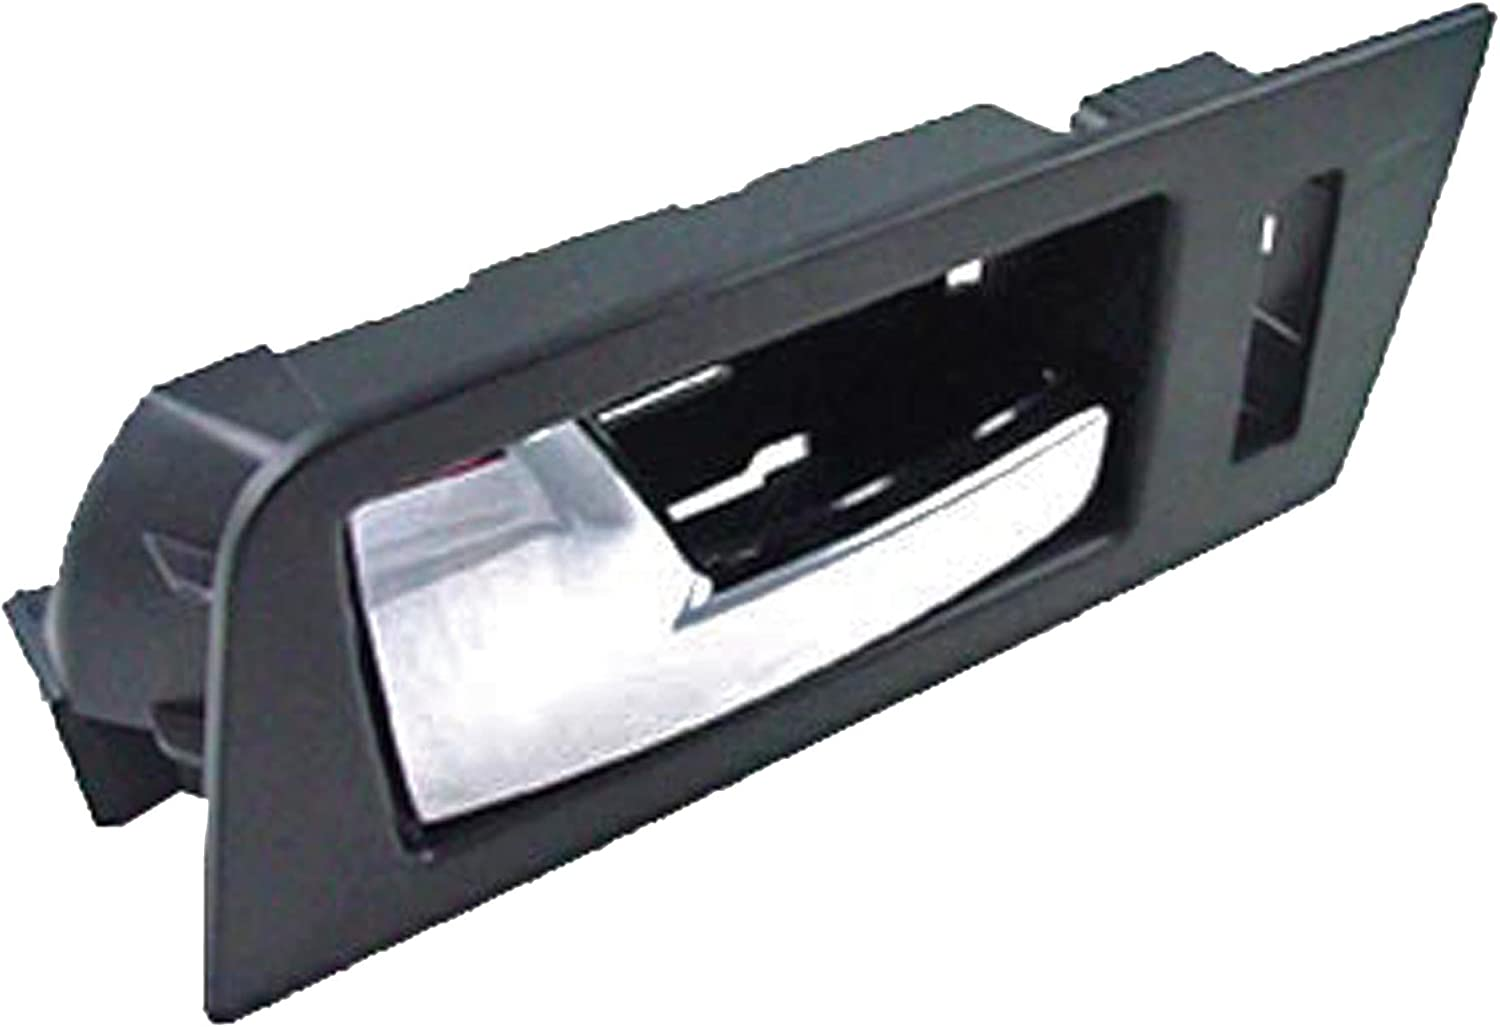 Dorman 81777 Front Driver Side Interior Door Handle for Select Ford Models Black and Chrome